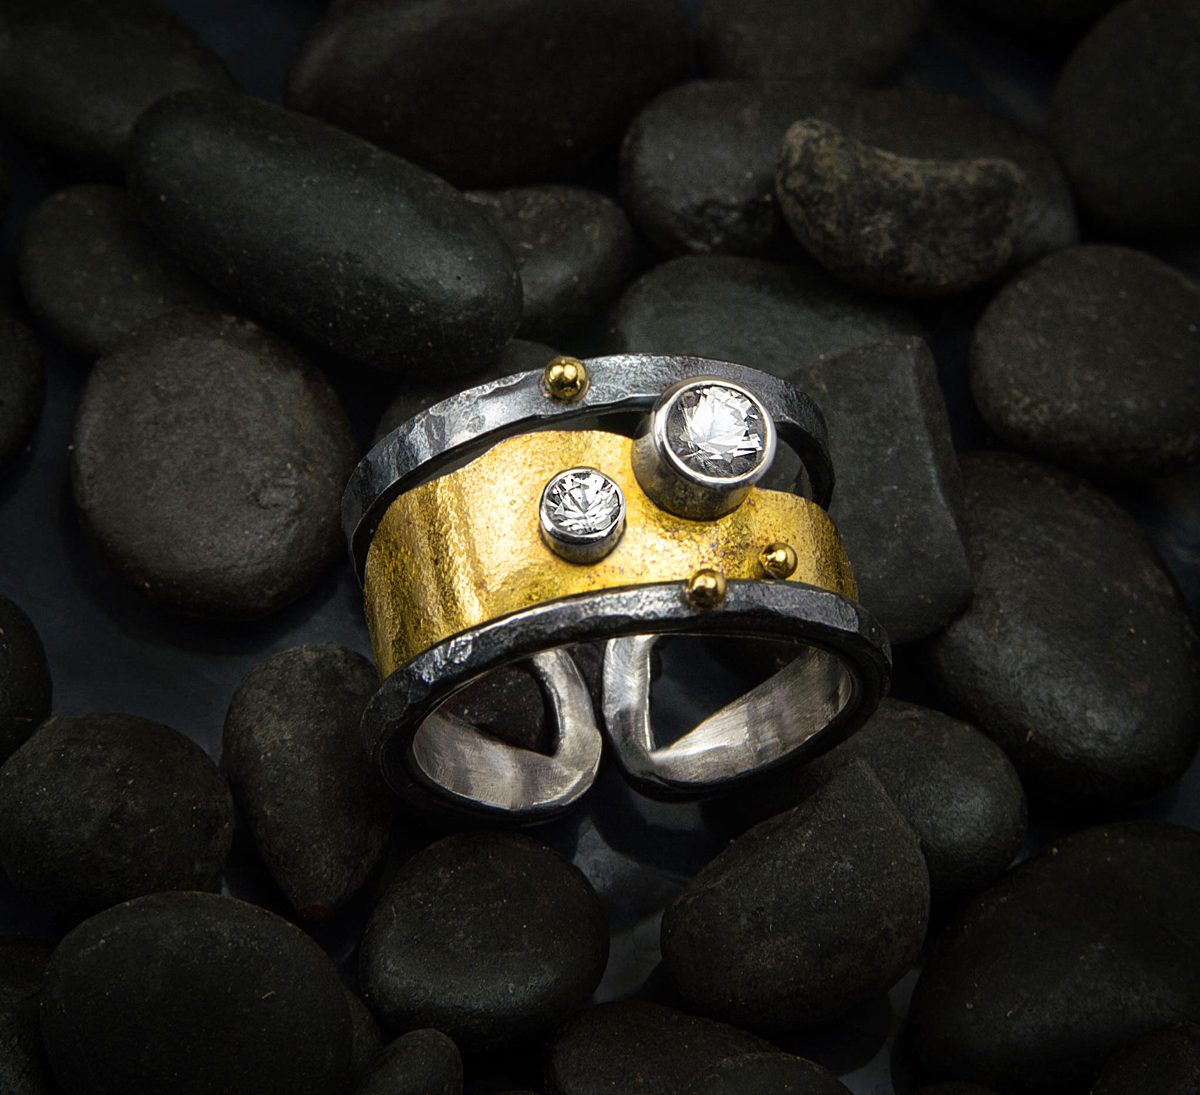 Beach pebble ring (large view)